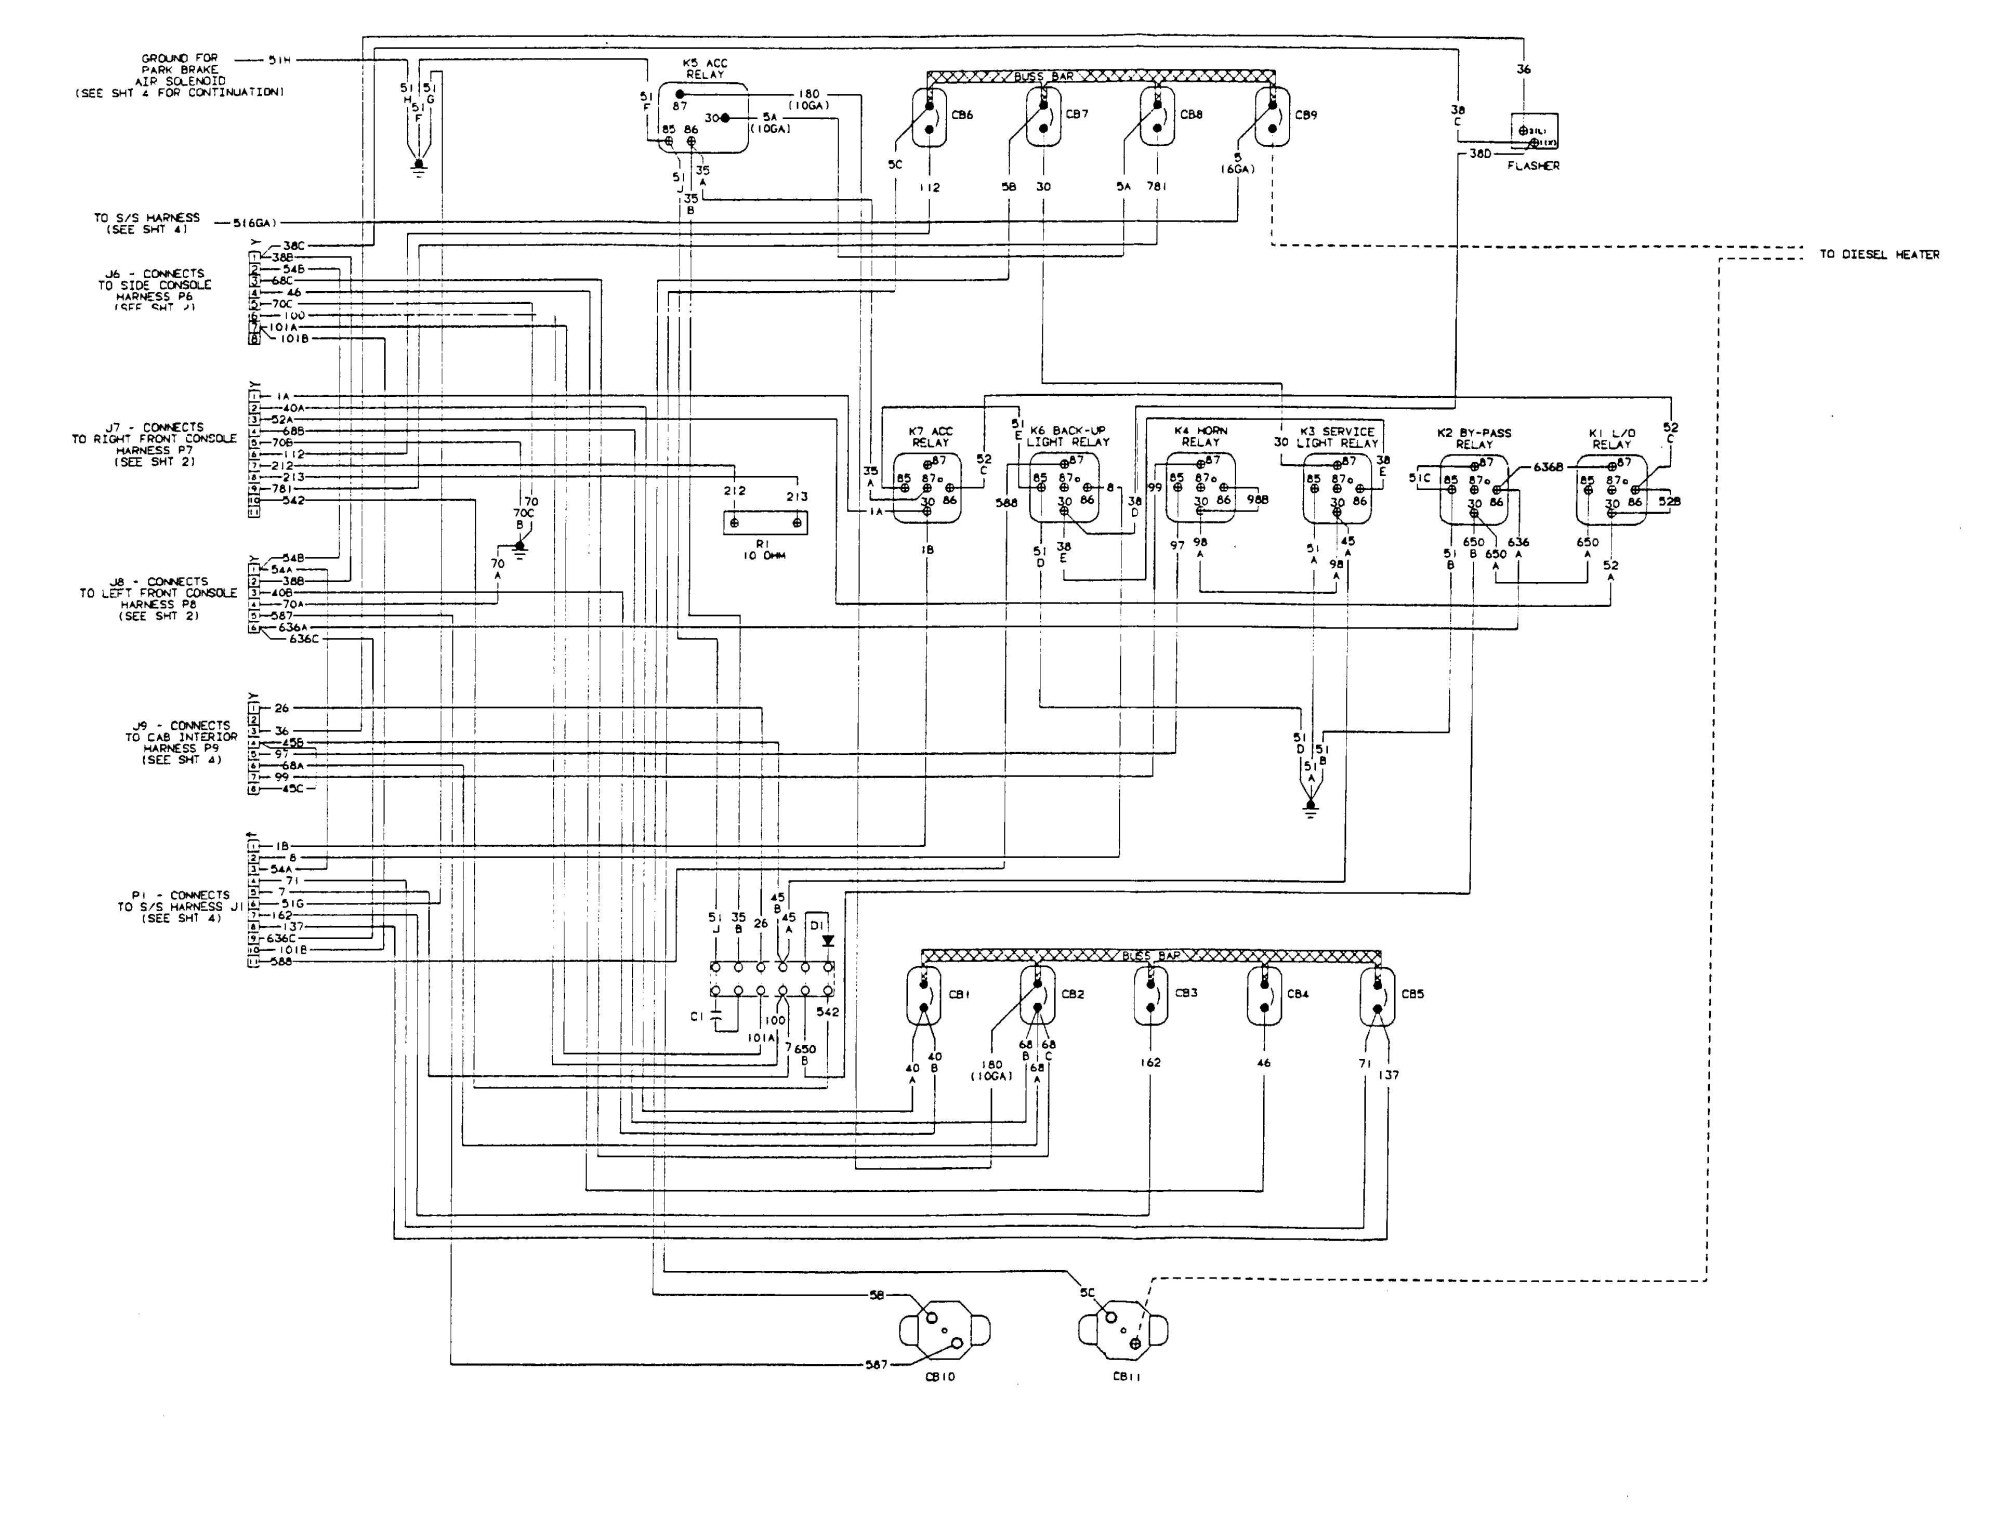 hight resolution of yale wiring schematic wiring diagram article reviewyale erp030 wiring diagram wiring diagram hostwiring yale diagram fork